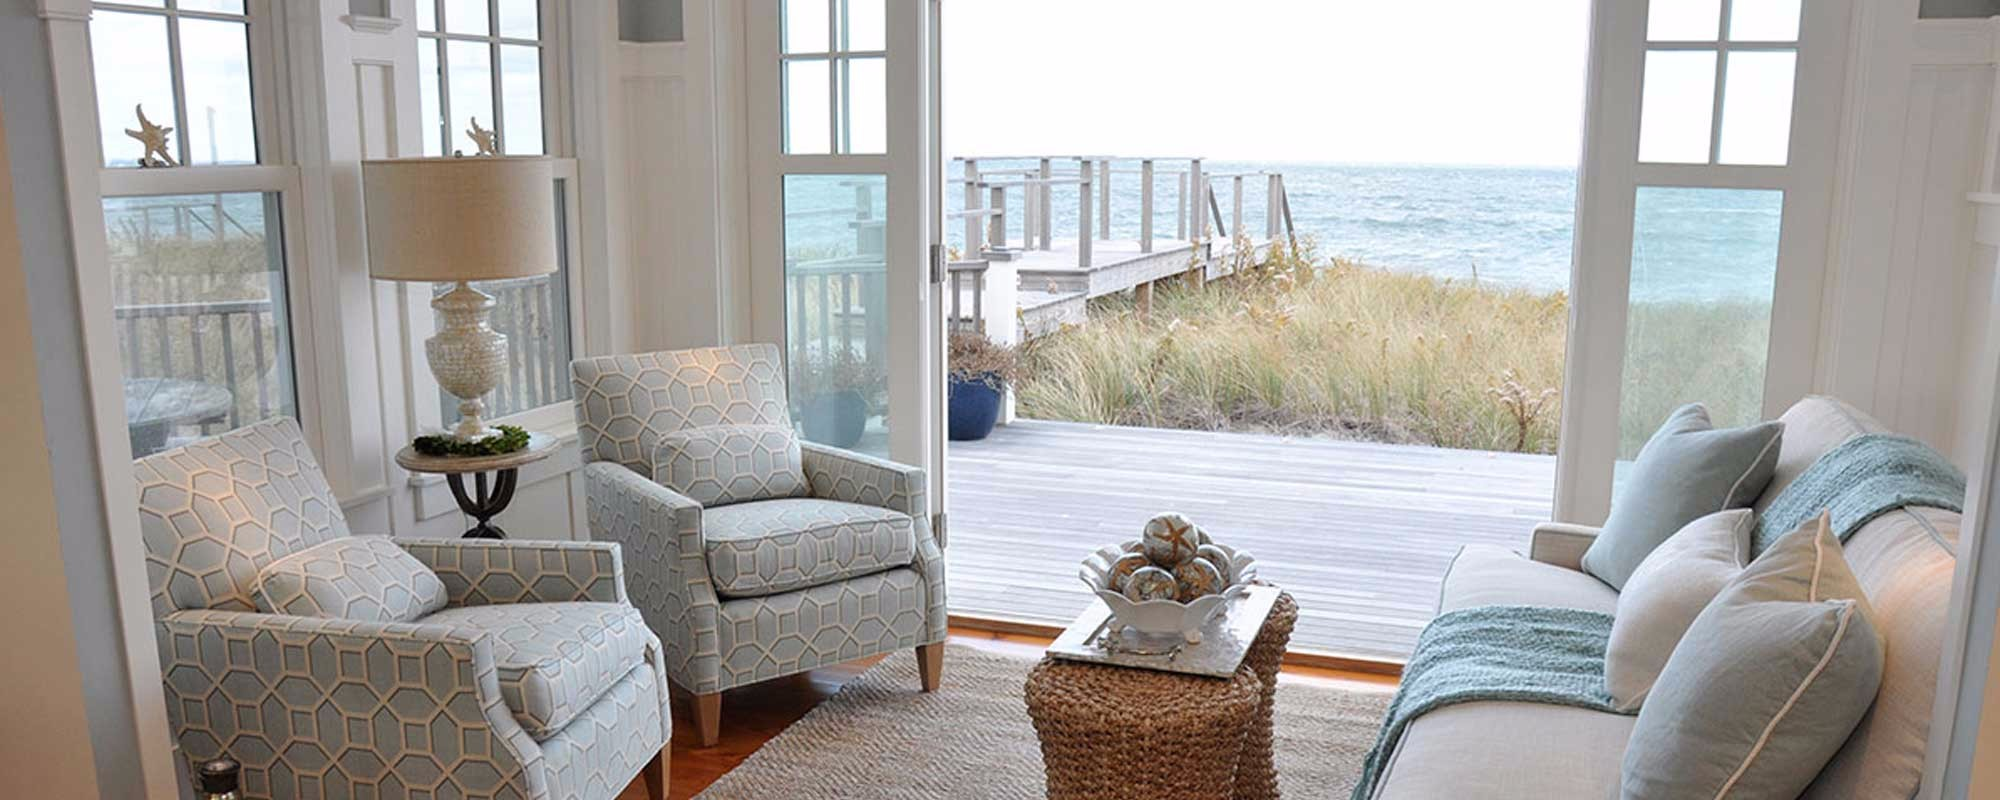 Interior design cape cod ma casabella interiors for Cape cod decor